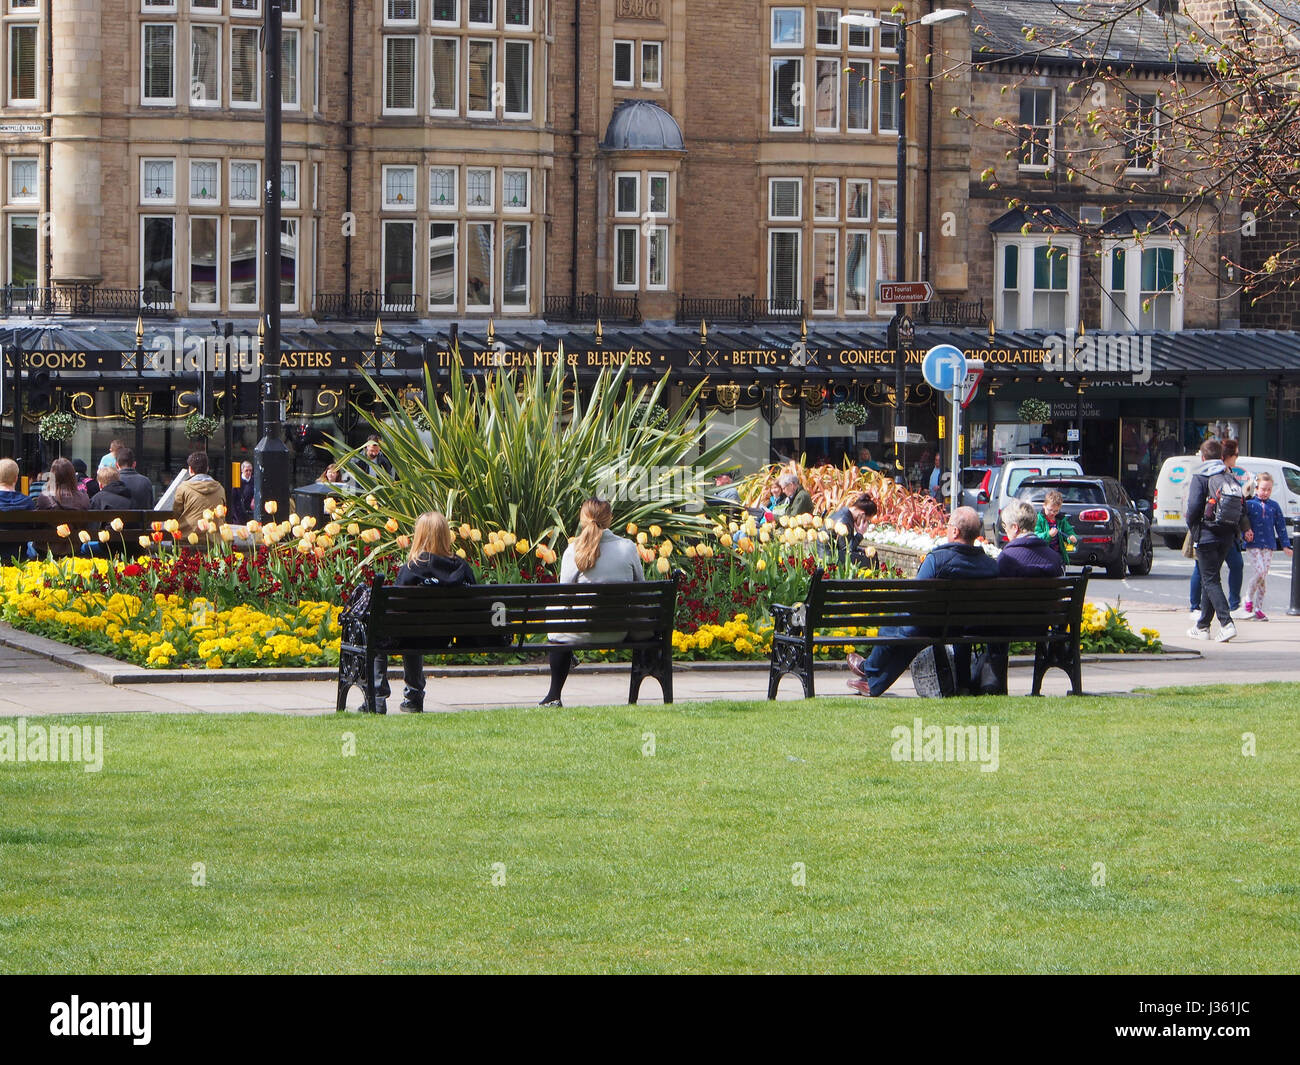 People relaxing in the sun in gardens in the centre of the Montpellier District of Harrogate, Yorkshire, UK, with - Stock Image